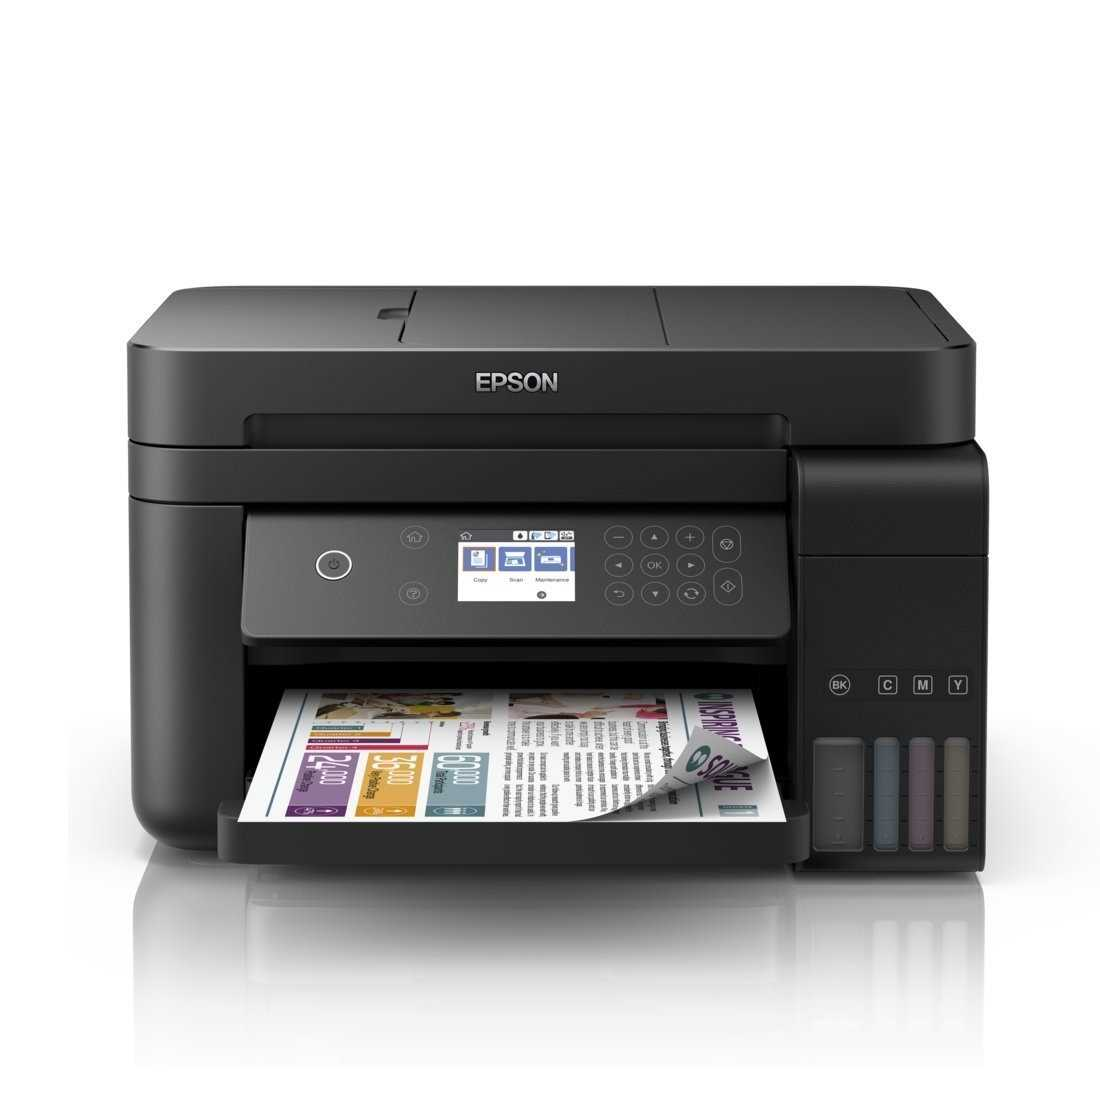 canon printer service center in mylapore, canon printer service centers in mylapore